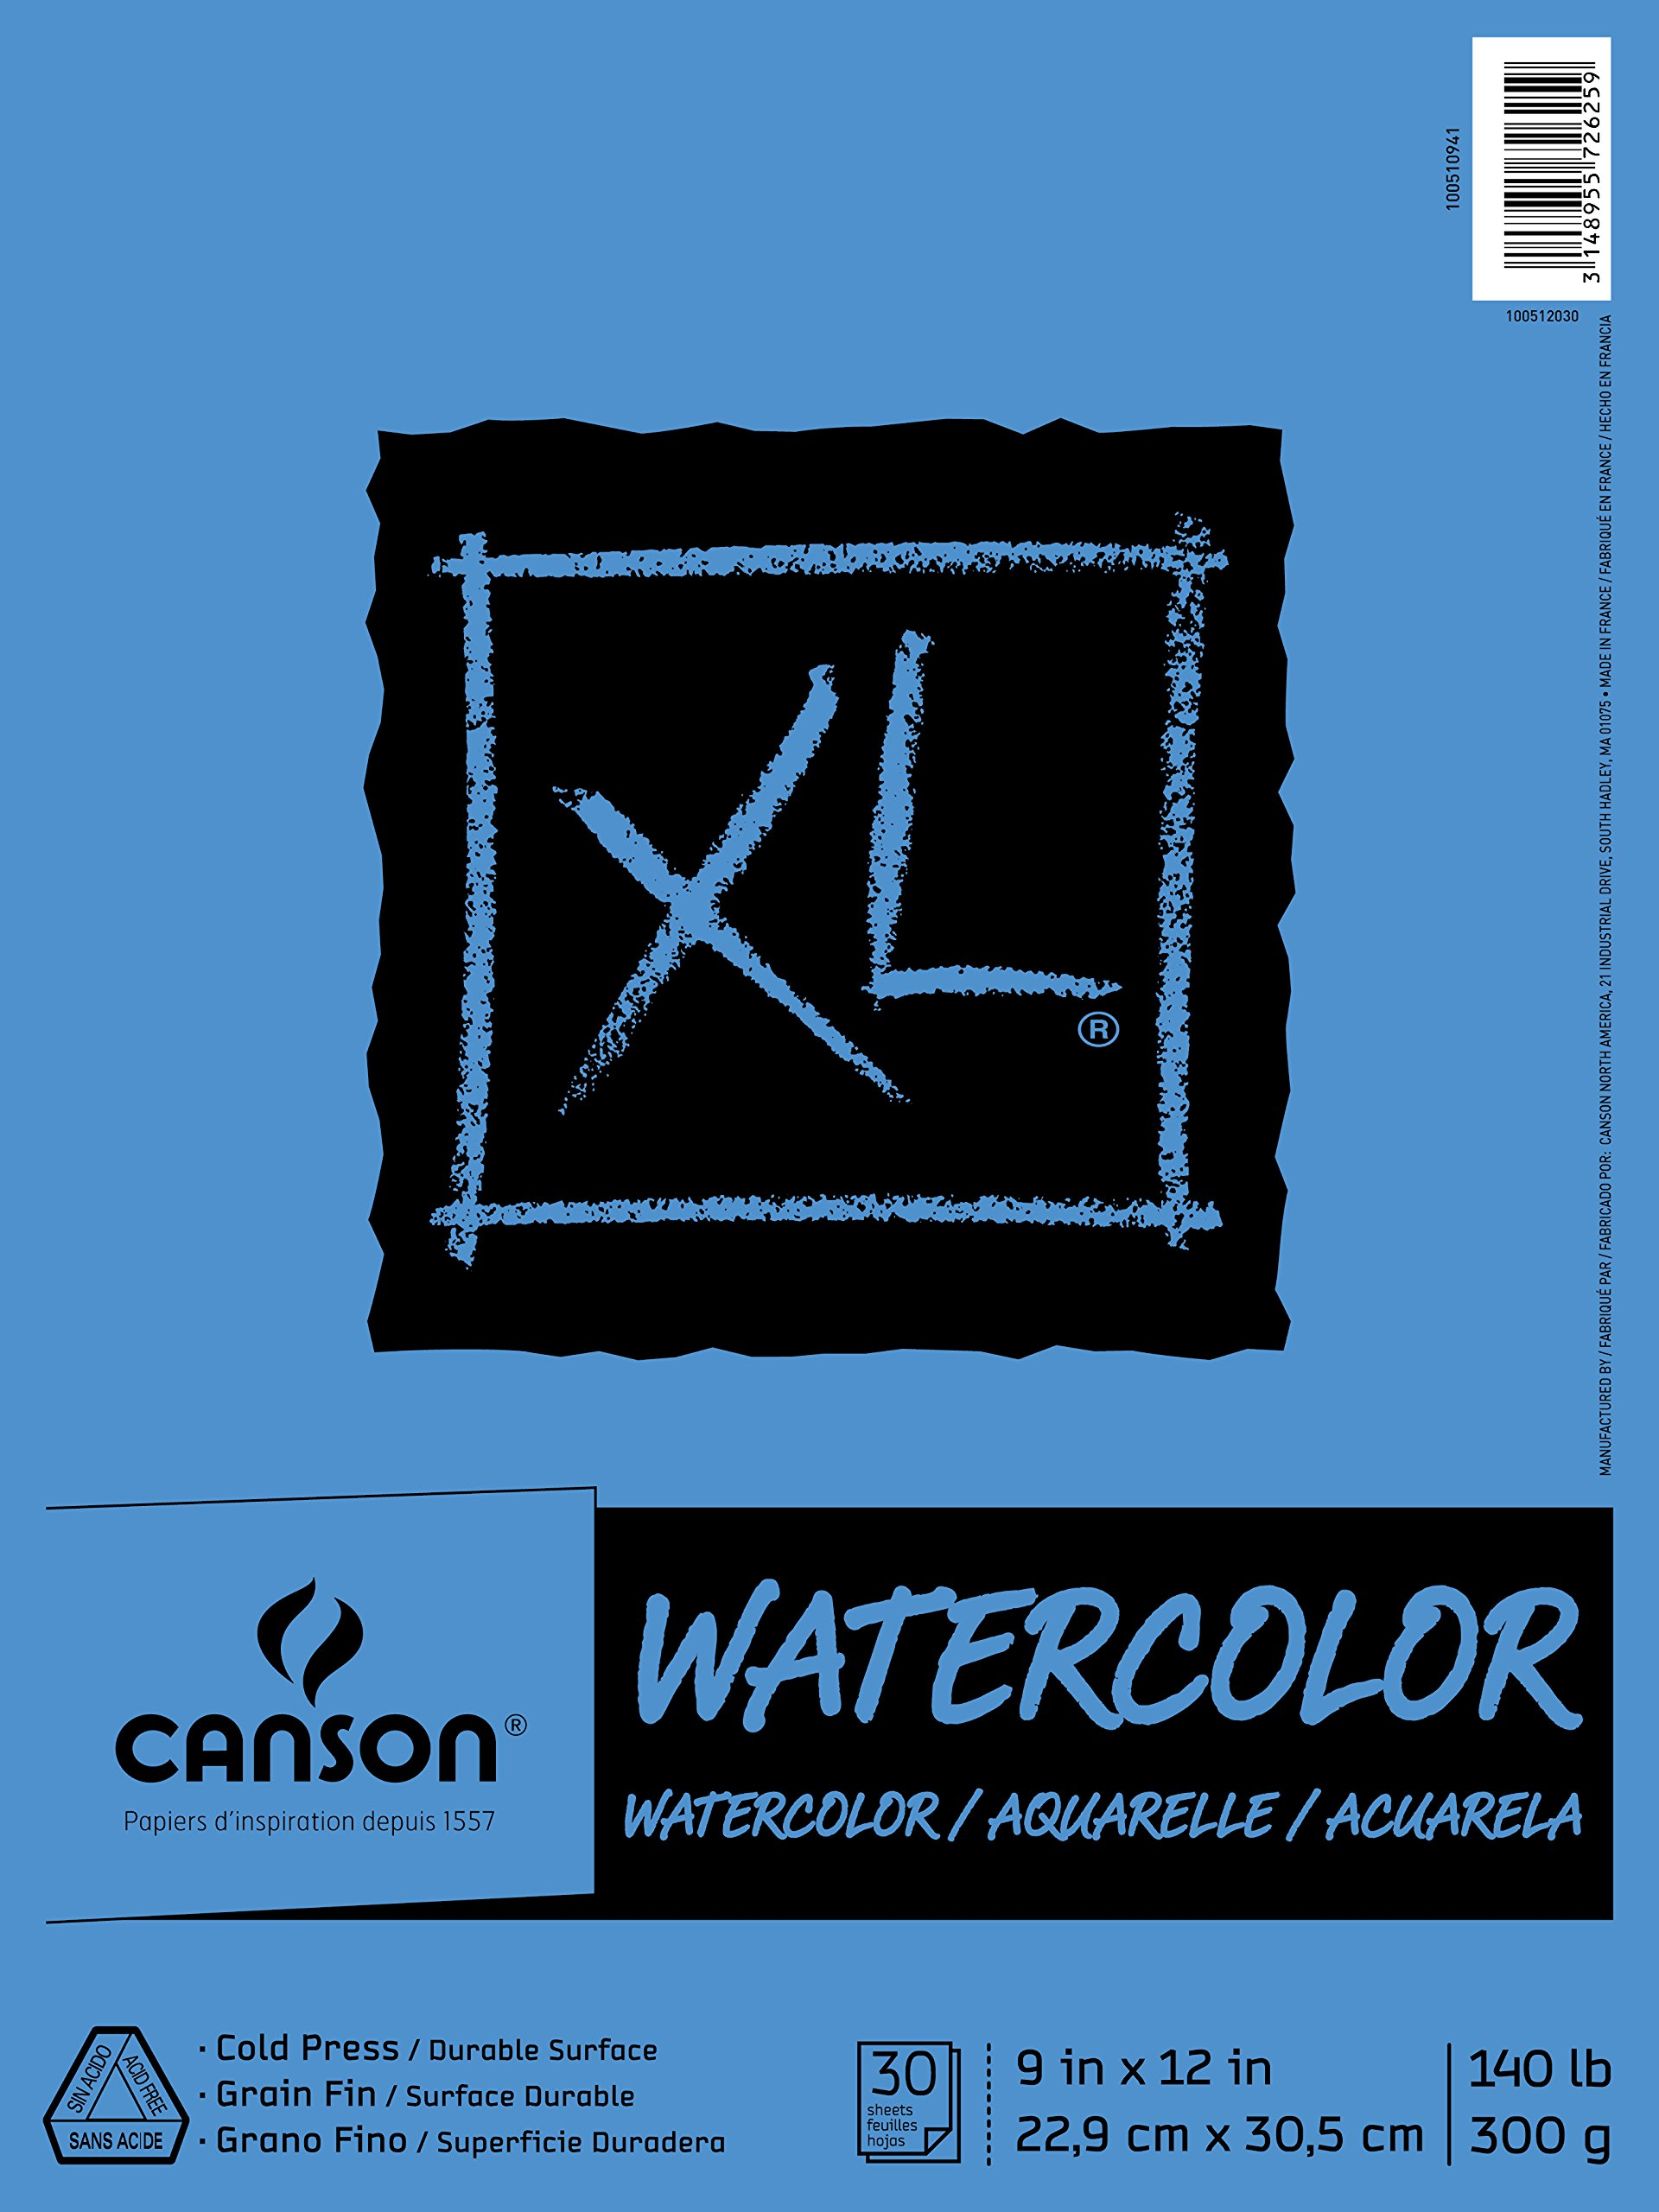 Canson Xl Series Watercolor Textured Paper Pad For Paint,..